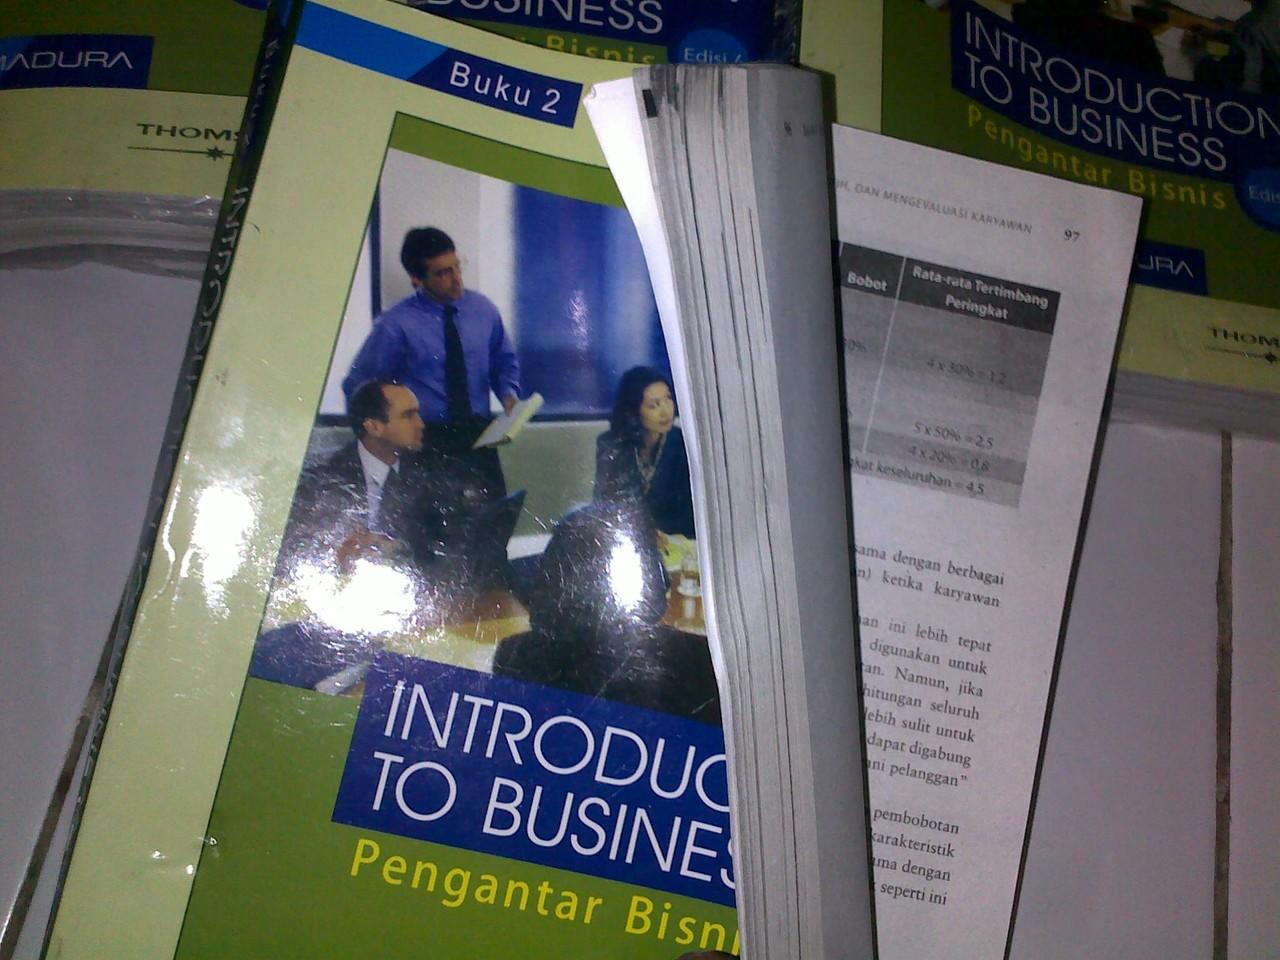 Introduction to business pengantar bisnis jeff madura